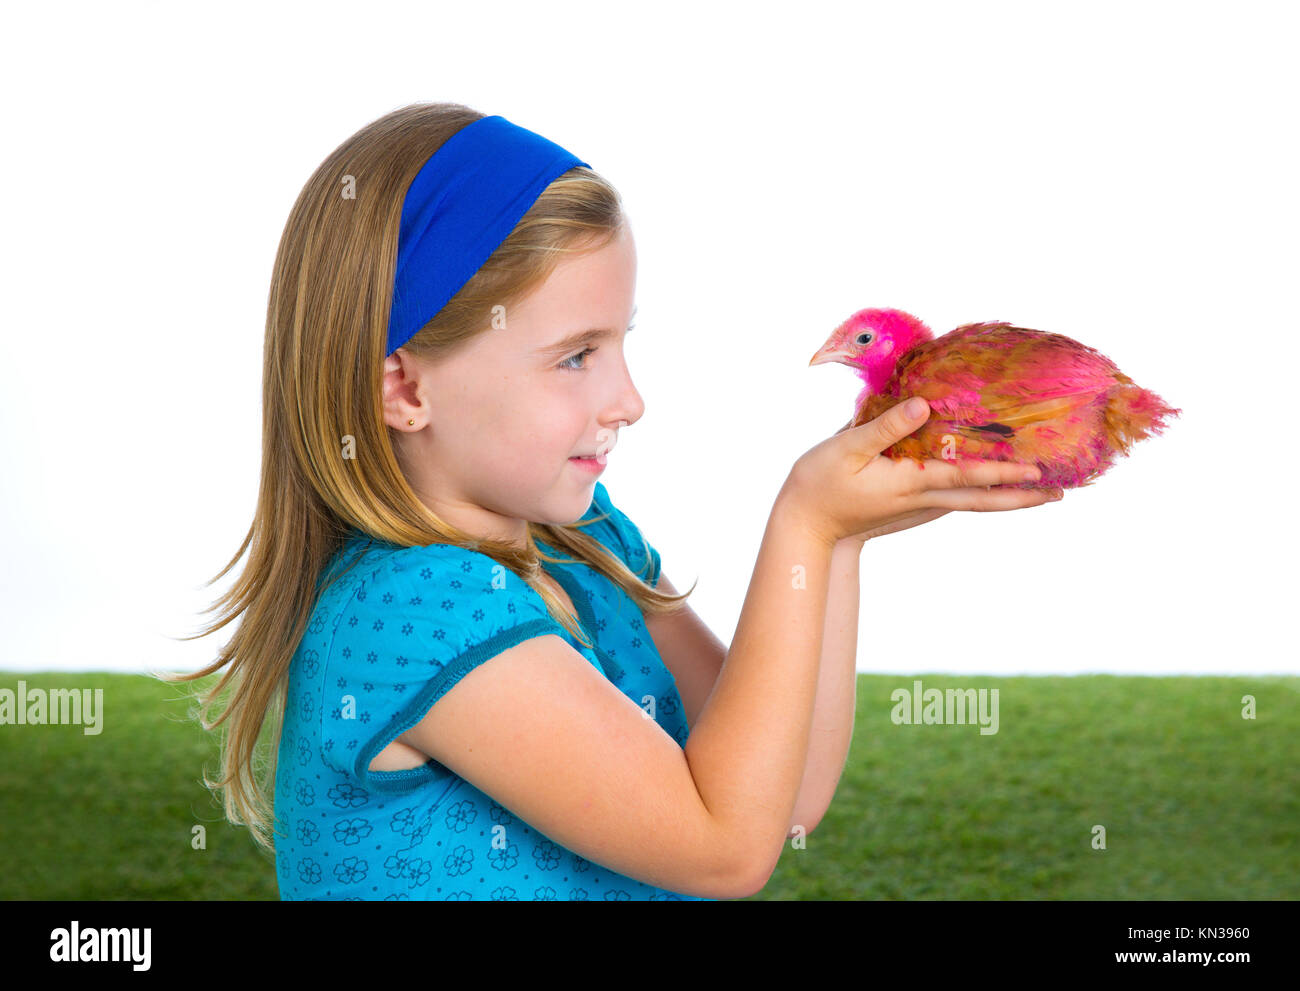 breeder hens kid girl rancher farmer playing with chicken chicks white background. - Stock Image